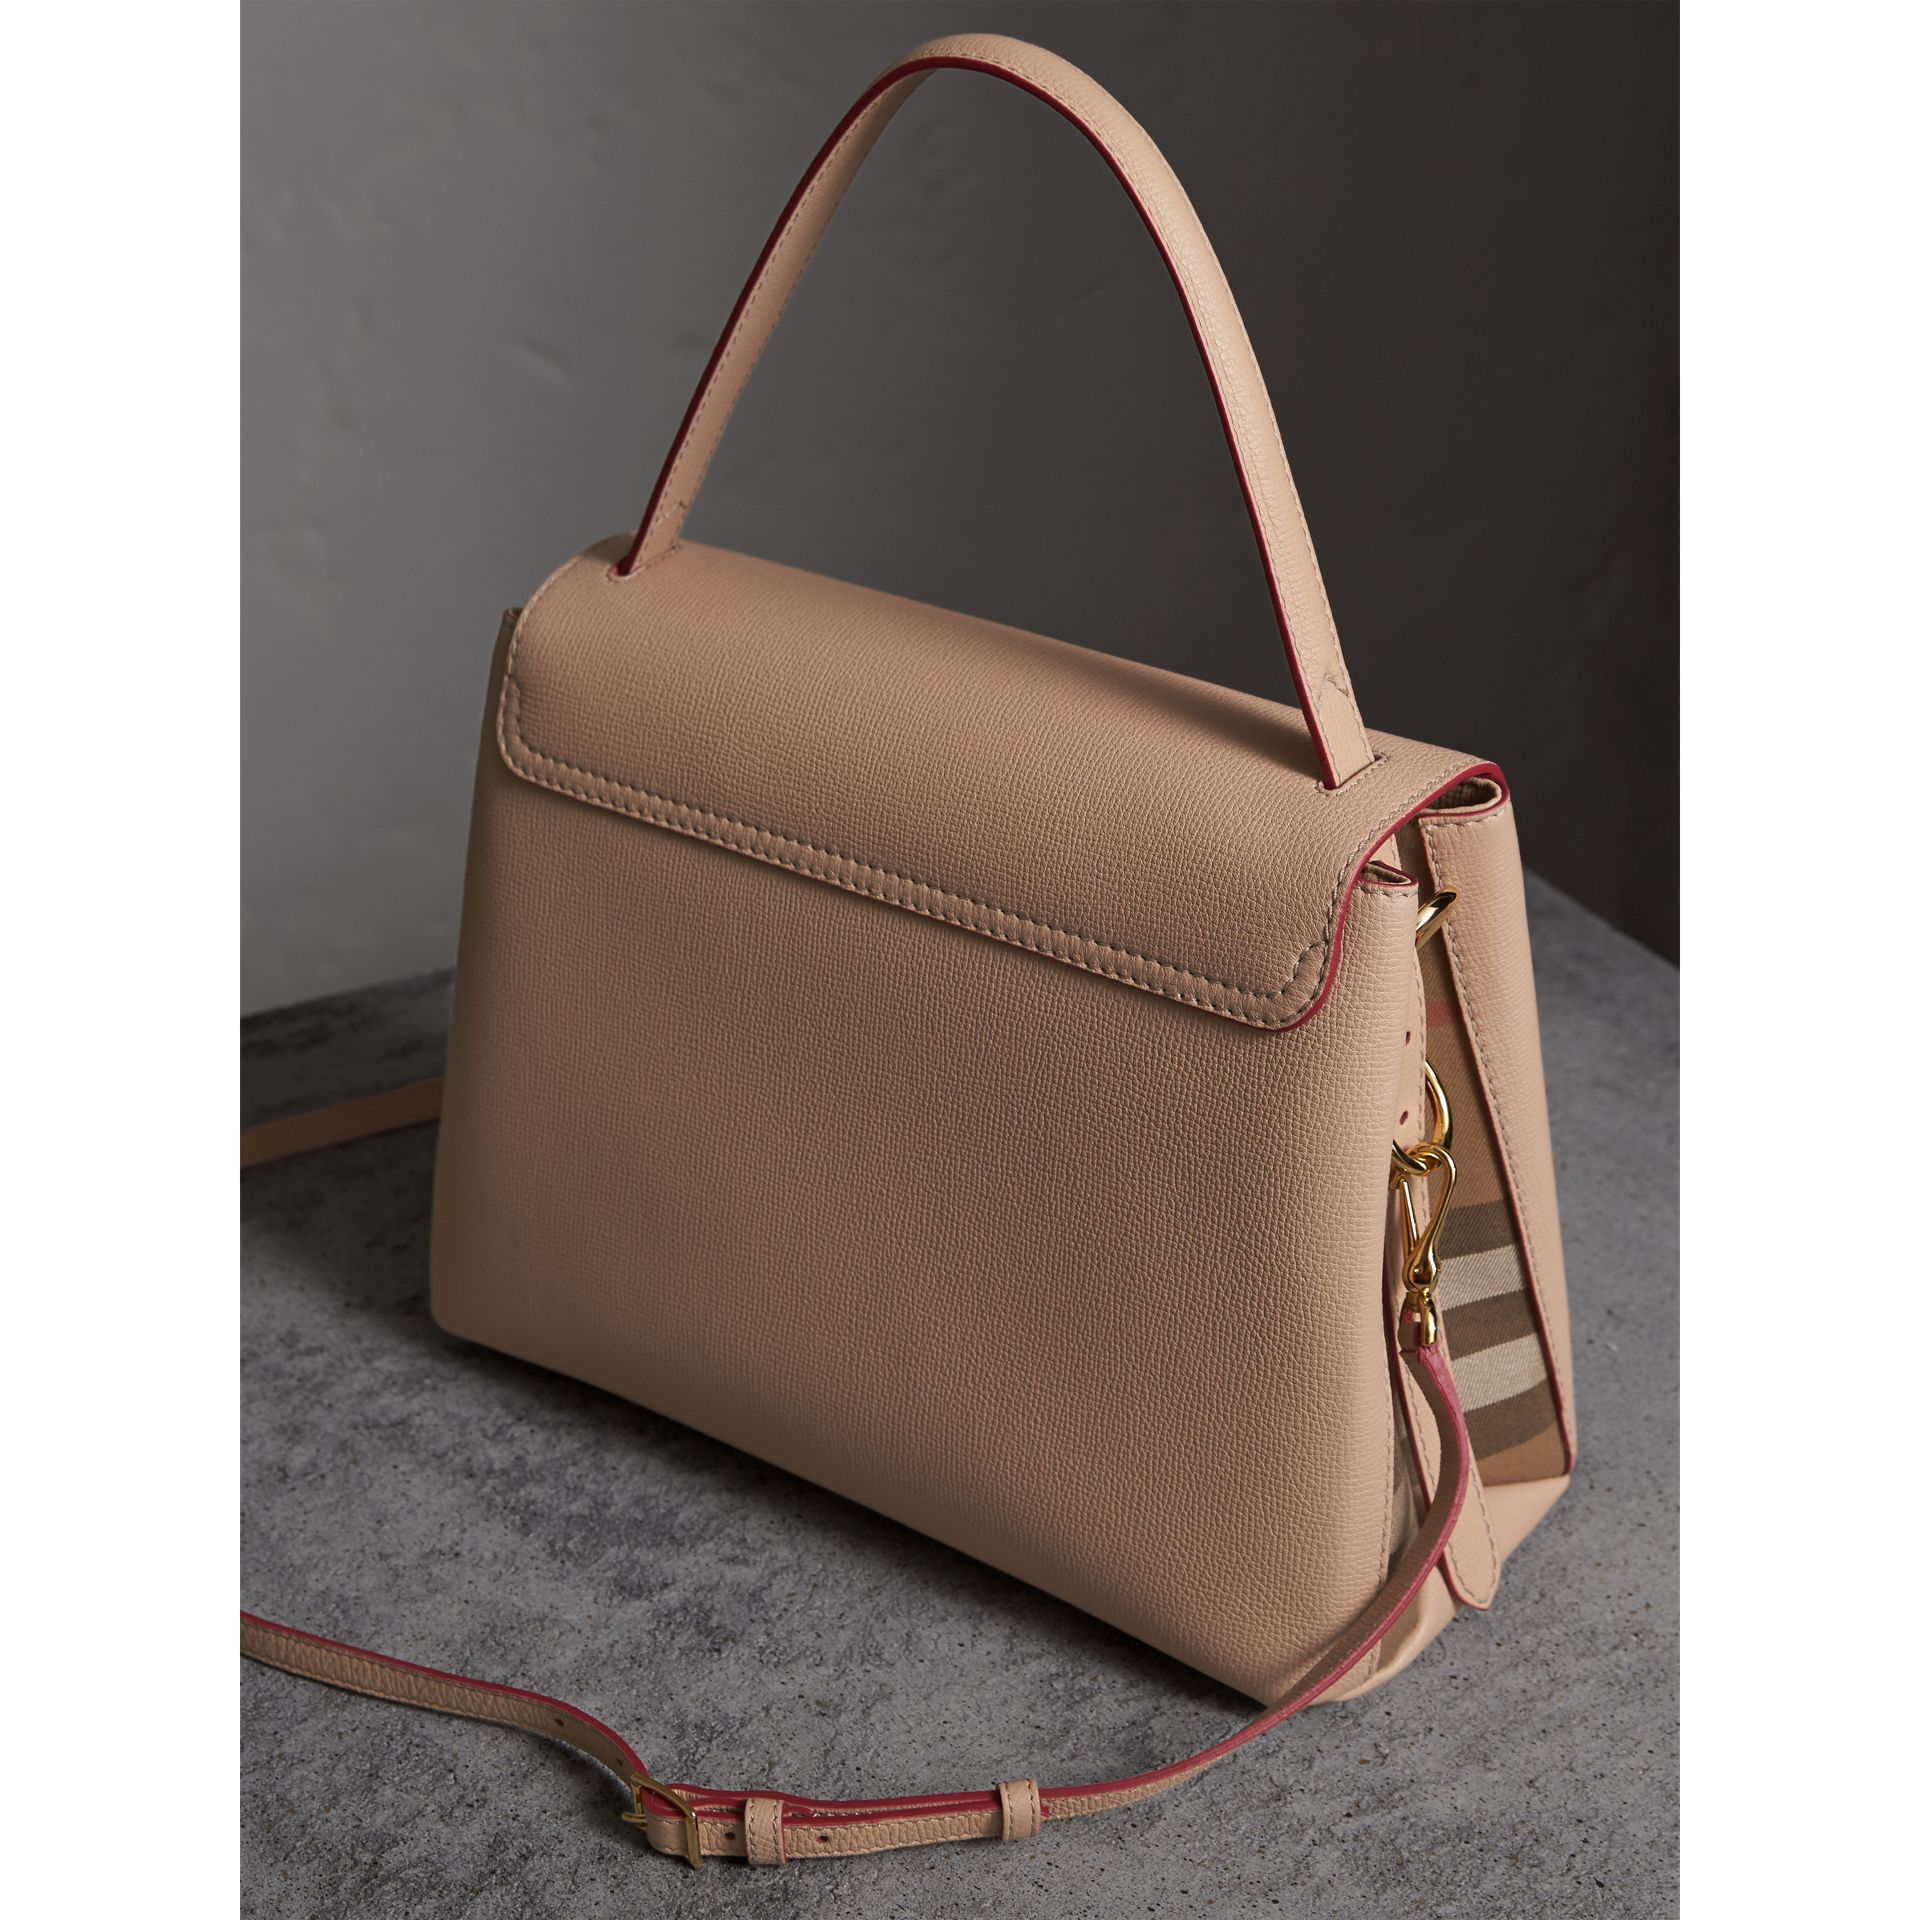 Medium Grainy Leather and House Check Tote Bag in Pale Apricot - Women | Burberry Singapore - gallery image 4